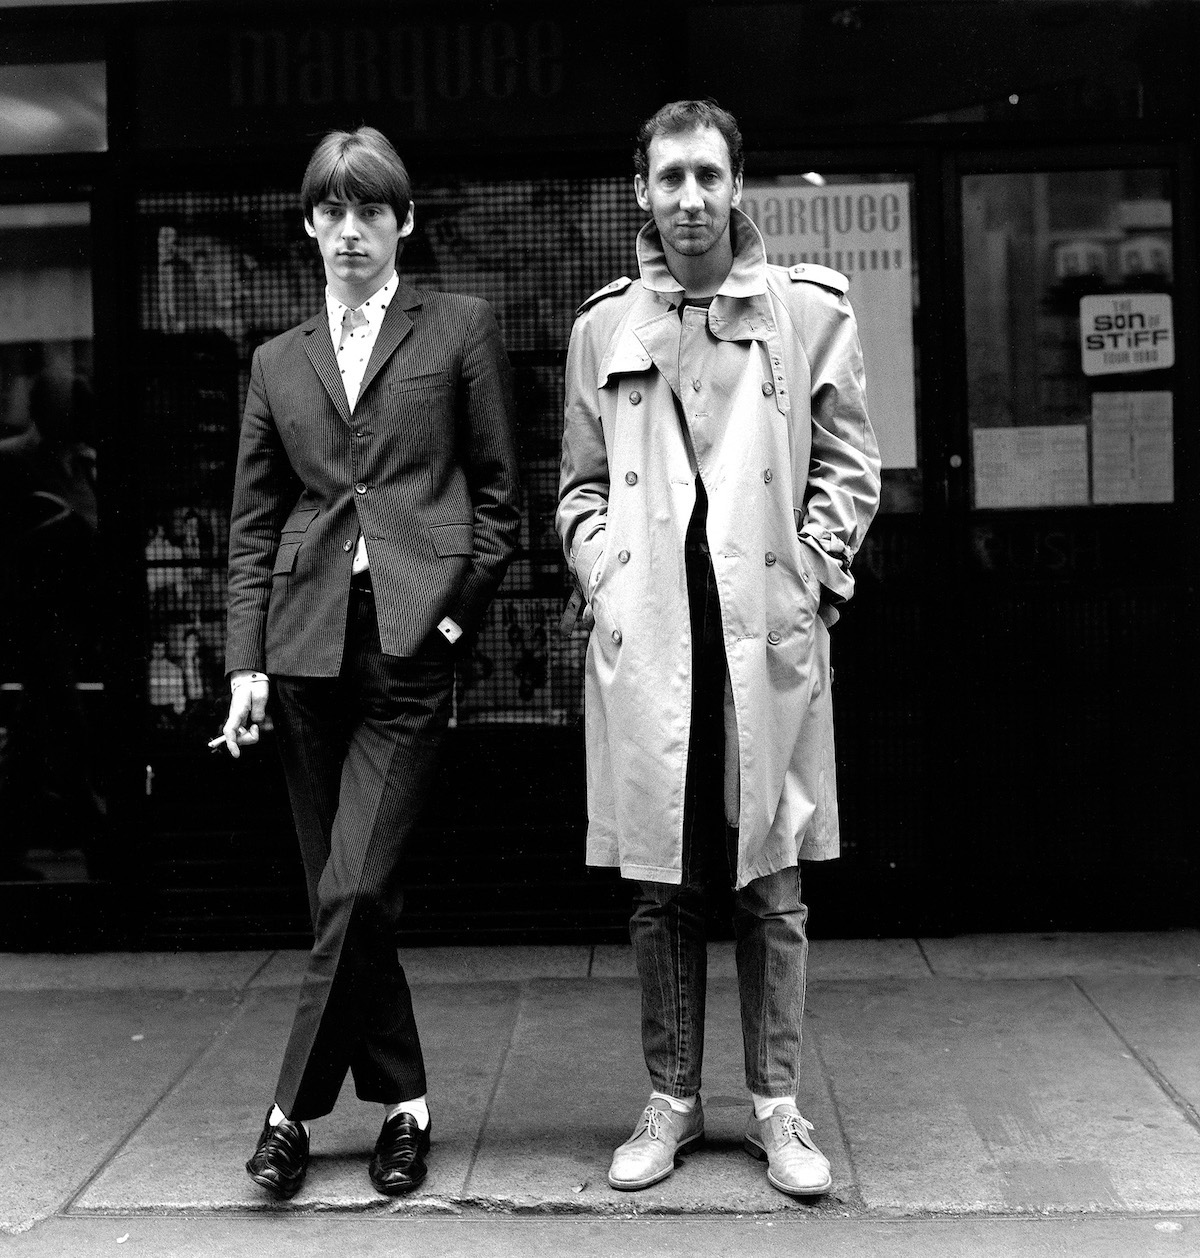 Paul Weller & Pete Townshend ©JanetteBeckman 1980 Courtesy of Fahey:Klein Gallery, Los Angeles